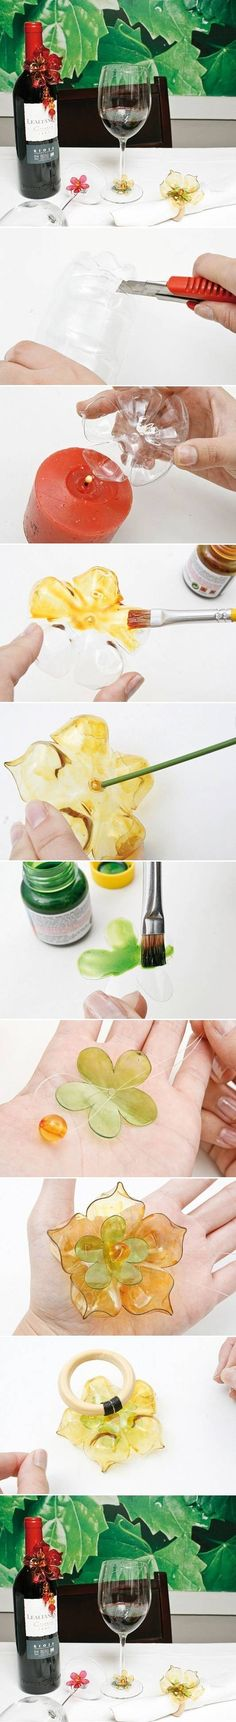 {DIY Plastic Bottle Flower